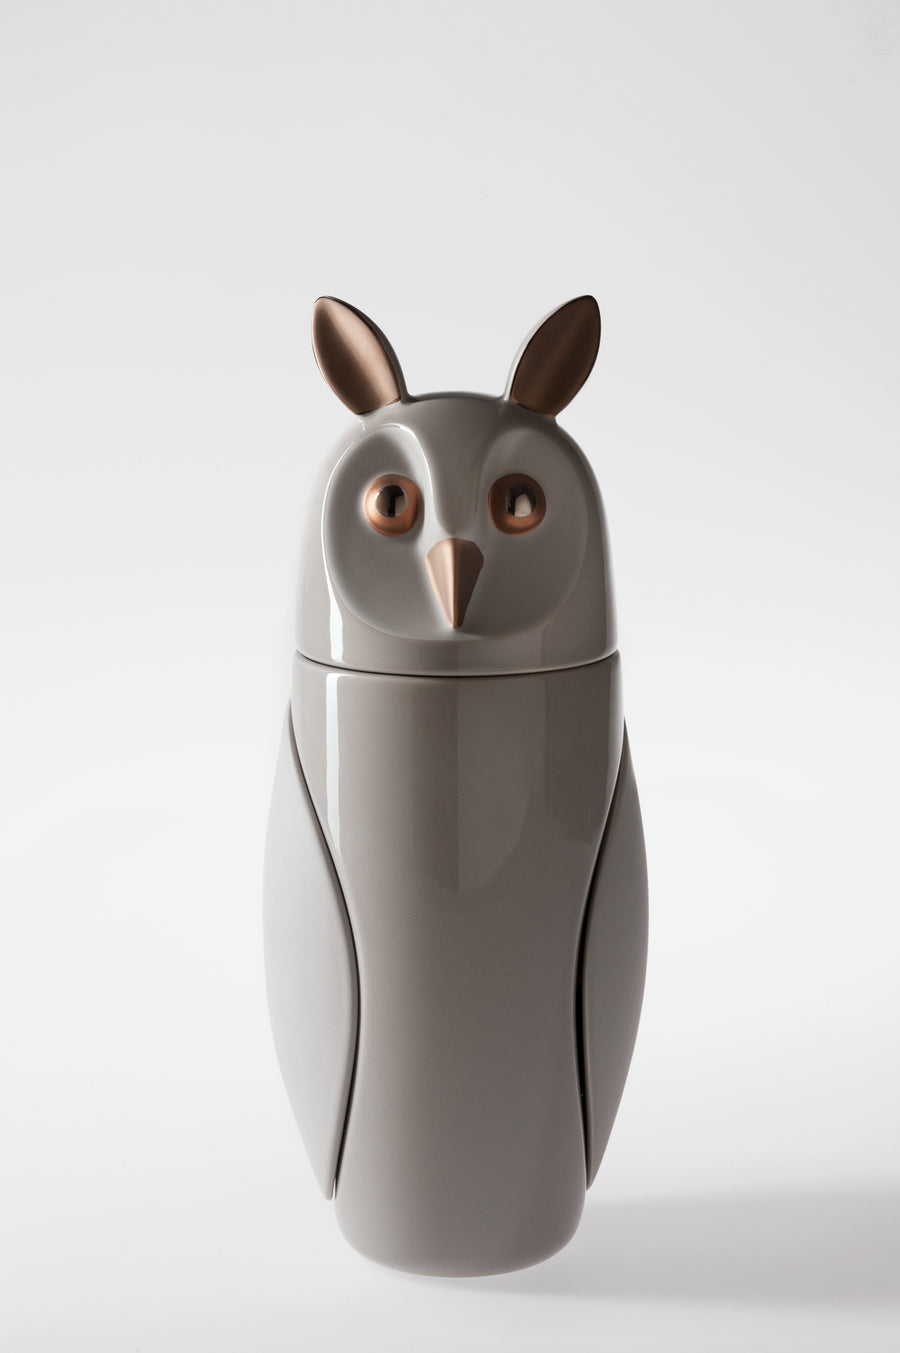 OWLS Ceramic Sculptures by Manolo Bossi for Bosa - DUPLEX DESIGN